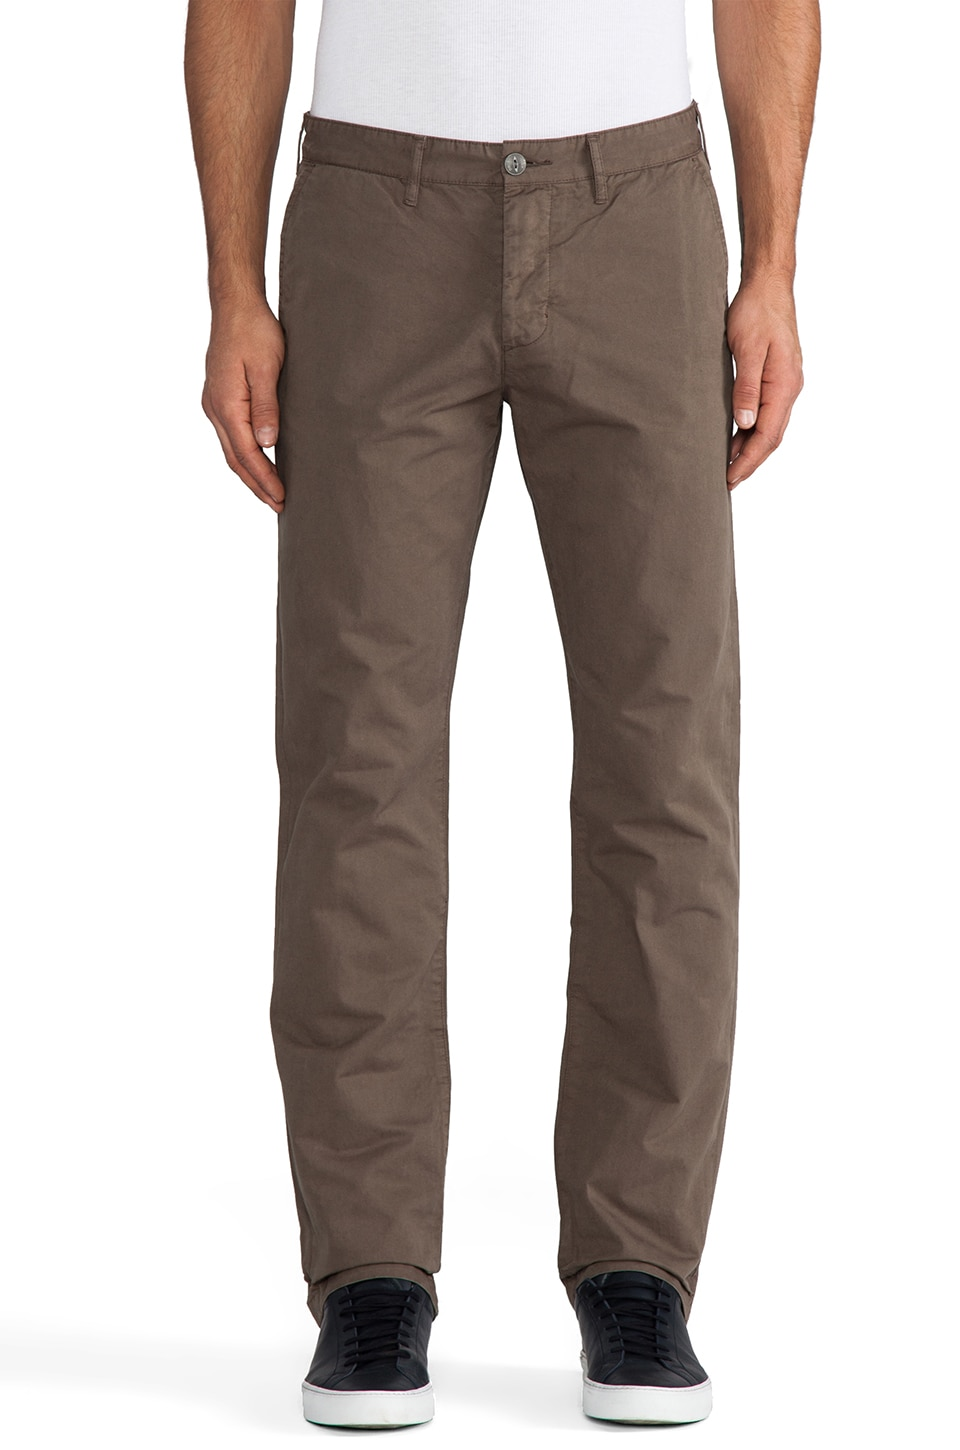 Obey Classique Chino Pants in Dark Olive